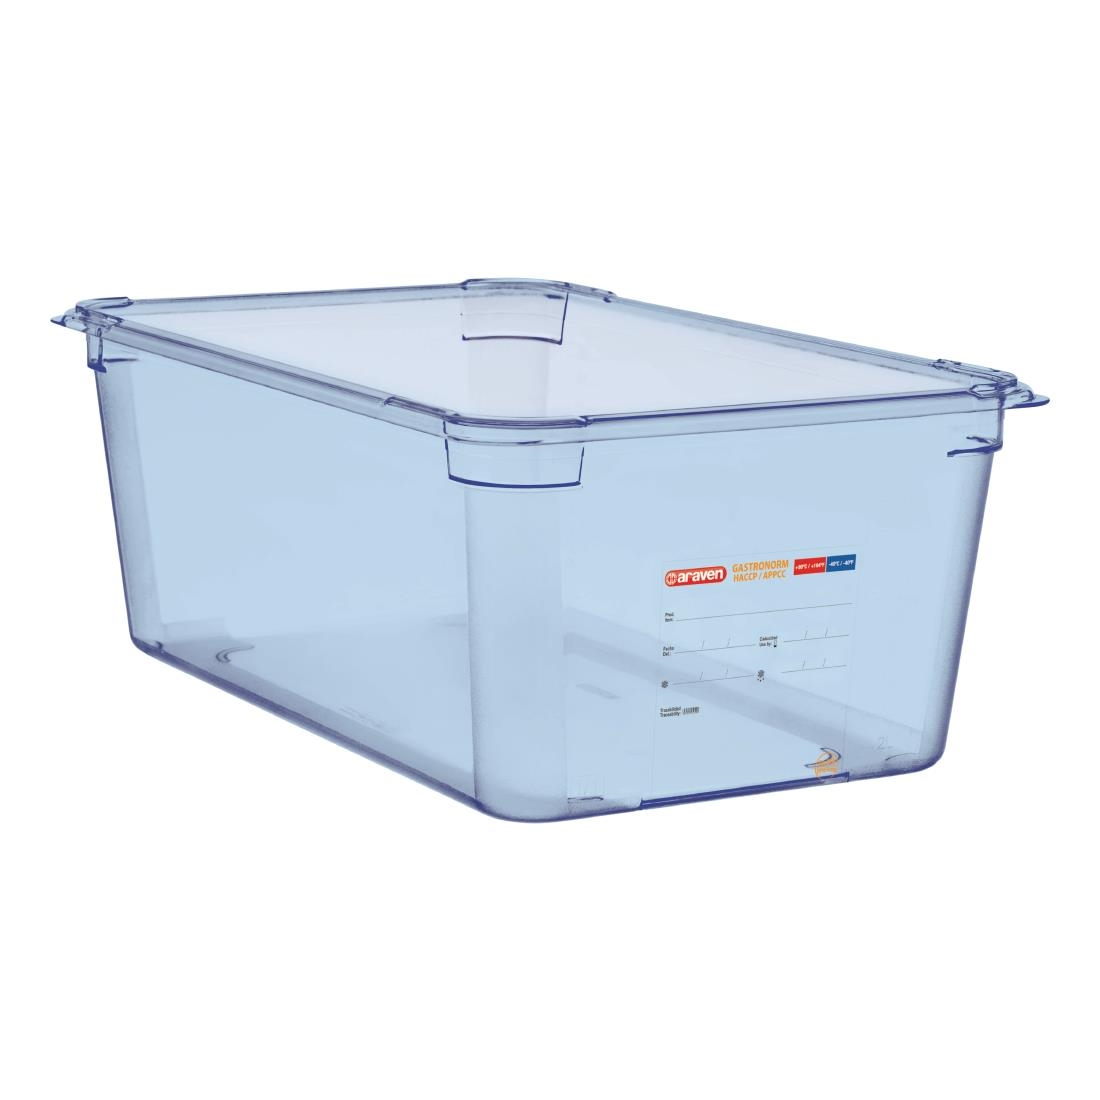 Image of Araven ABS Food Storage Container Blue GN 1/1 200mm